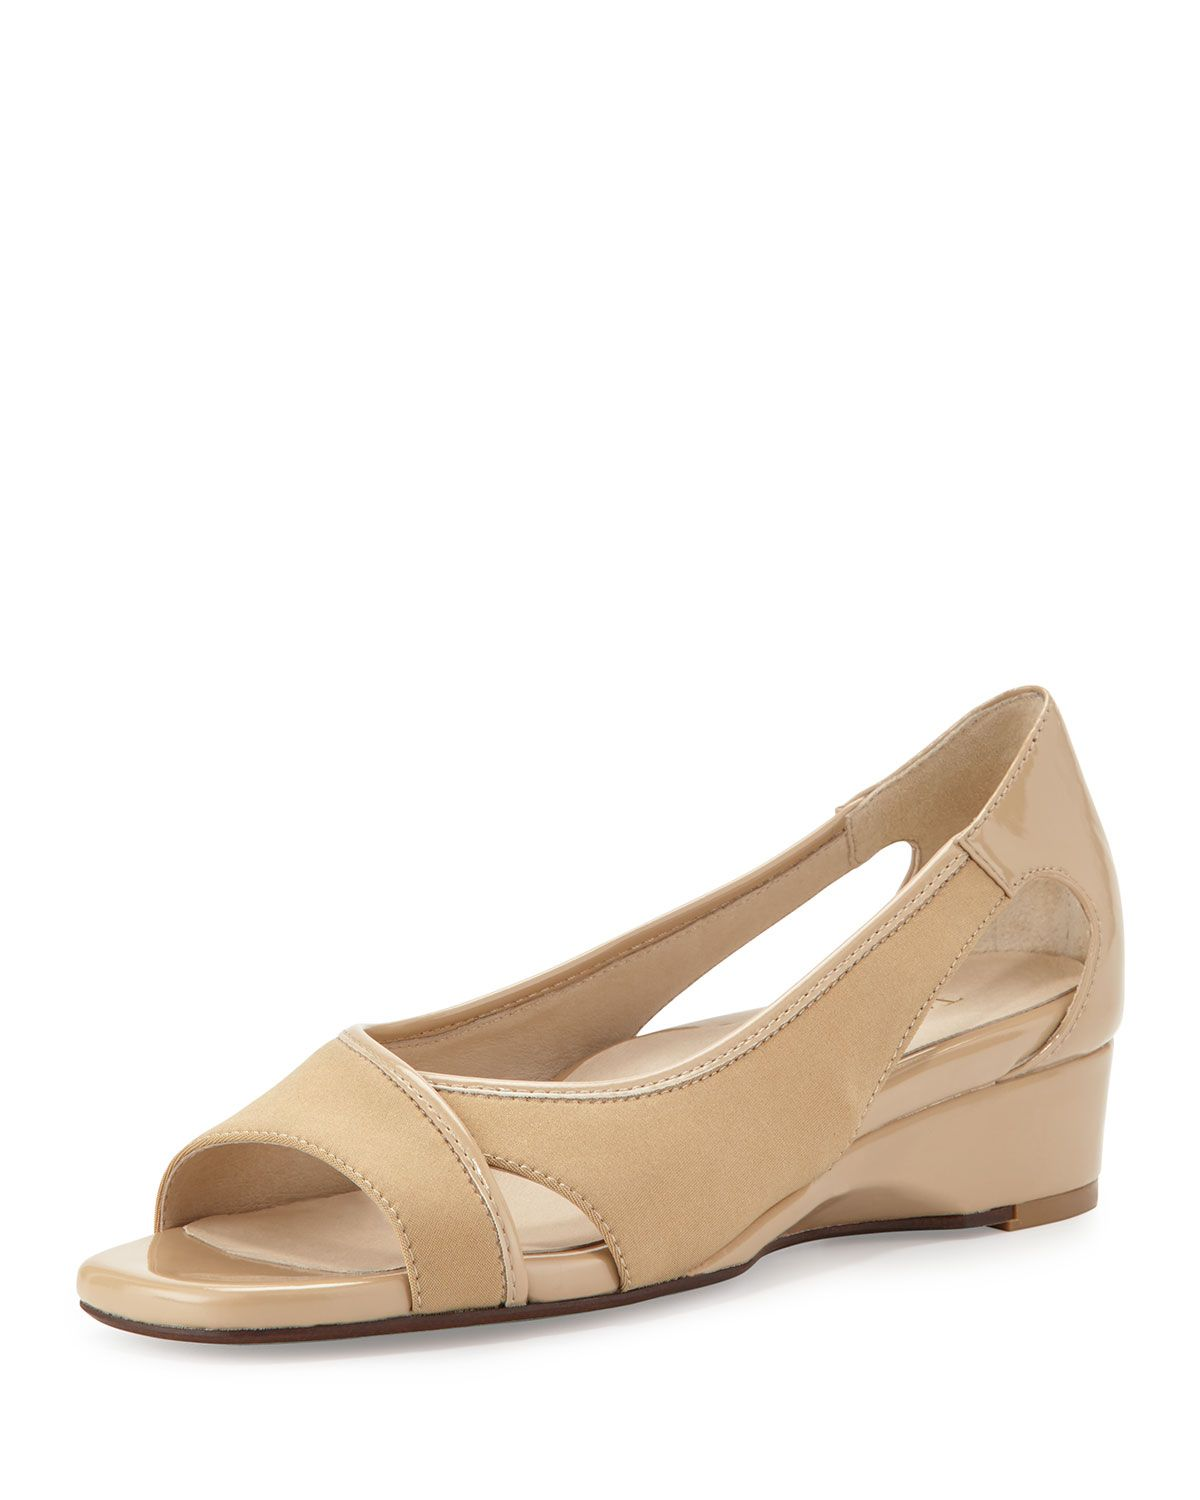 73c646a11b8 Klouse Open-Toe Demi-Wedge Sandal